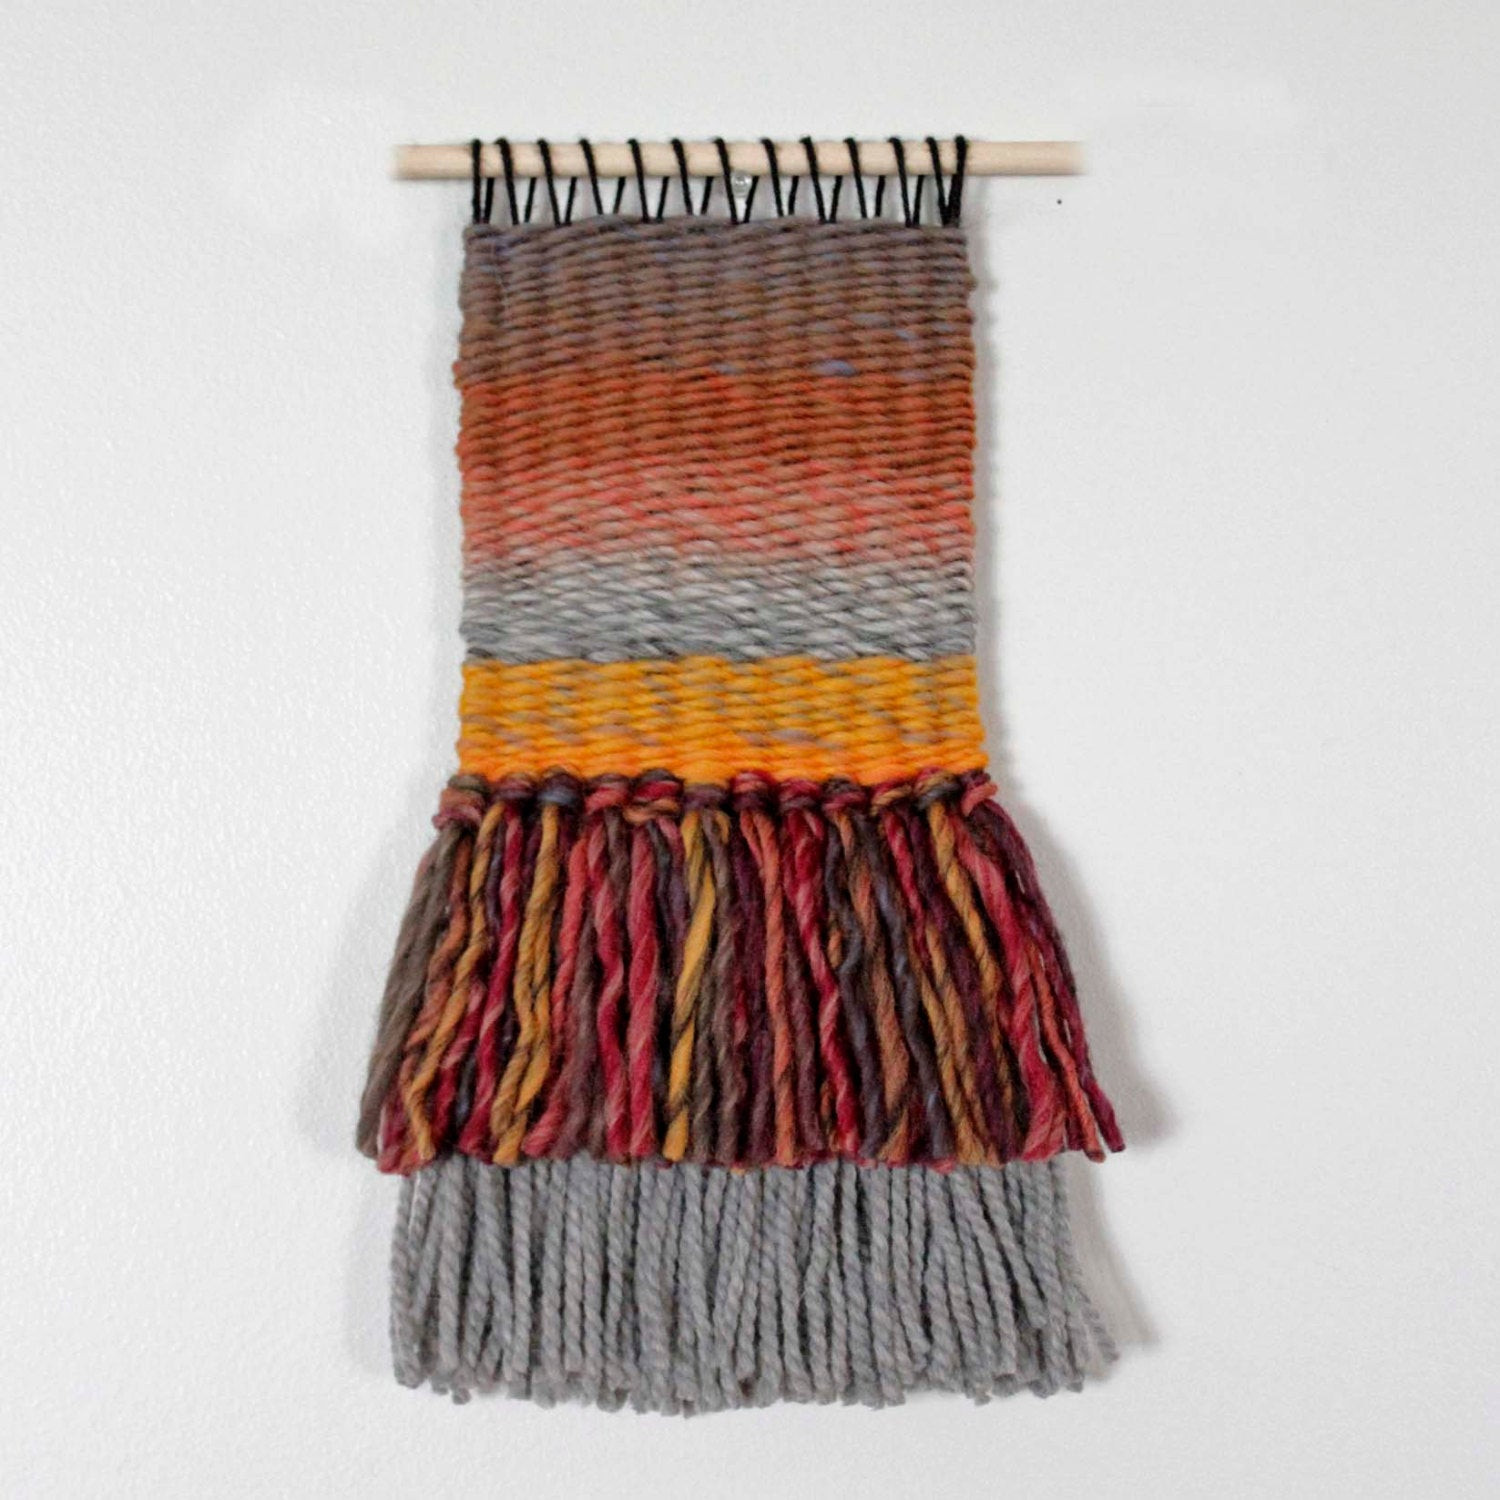 Best ideas about Woven Wall Art . Save or Pin Modern Wall HangingFall Decor Woven Wall Hanging Wool Now.